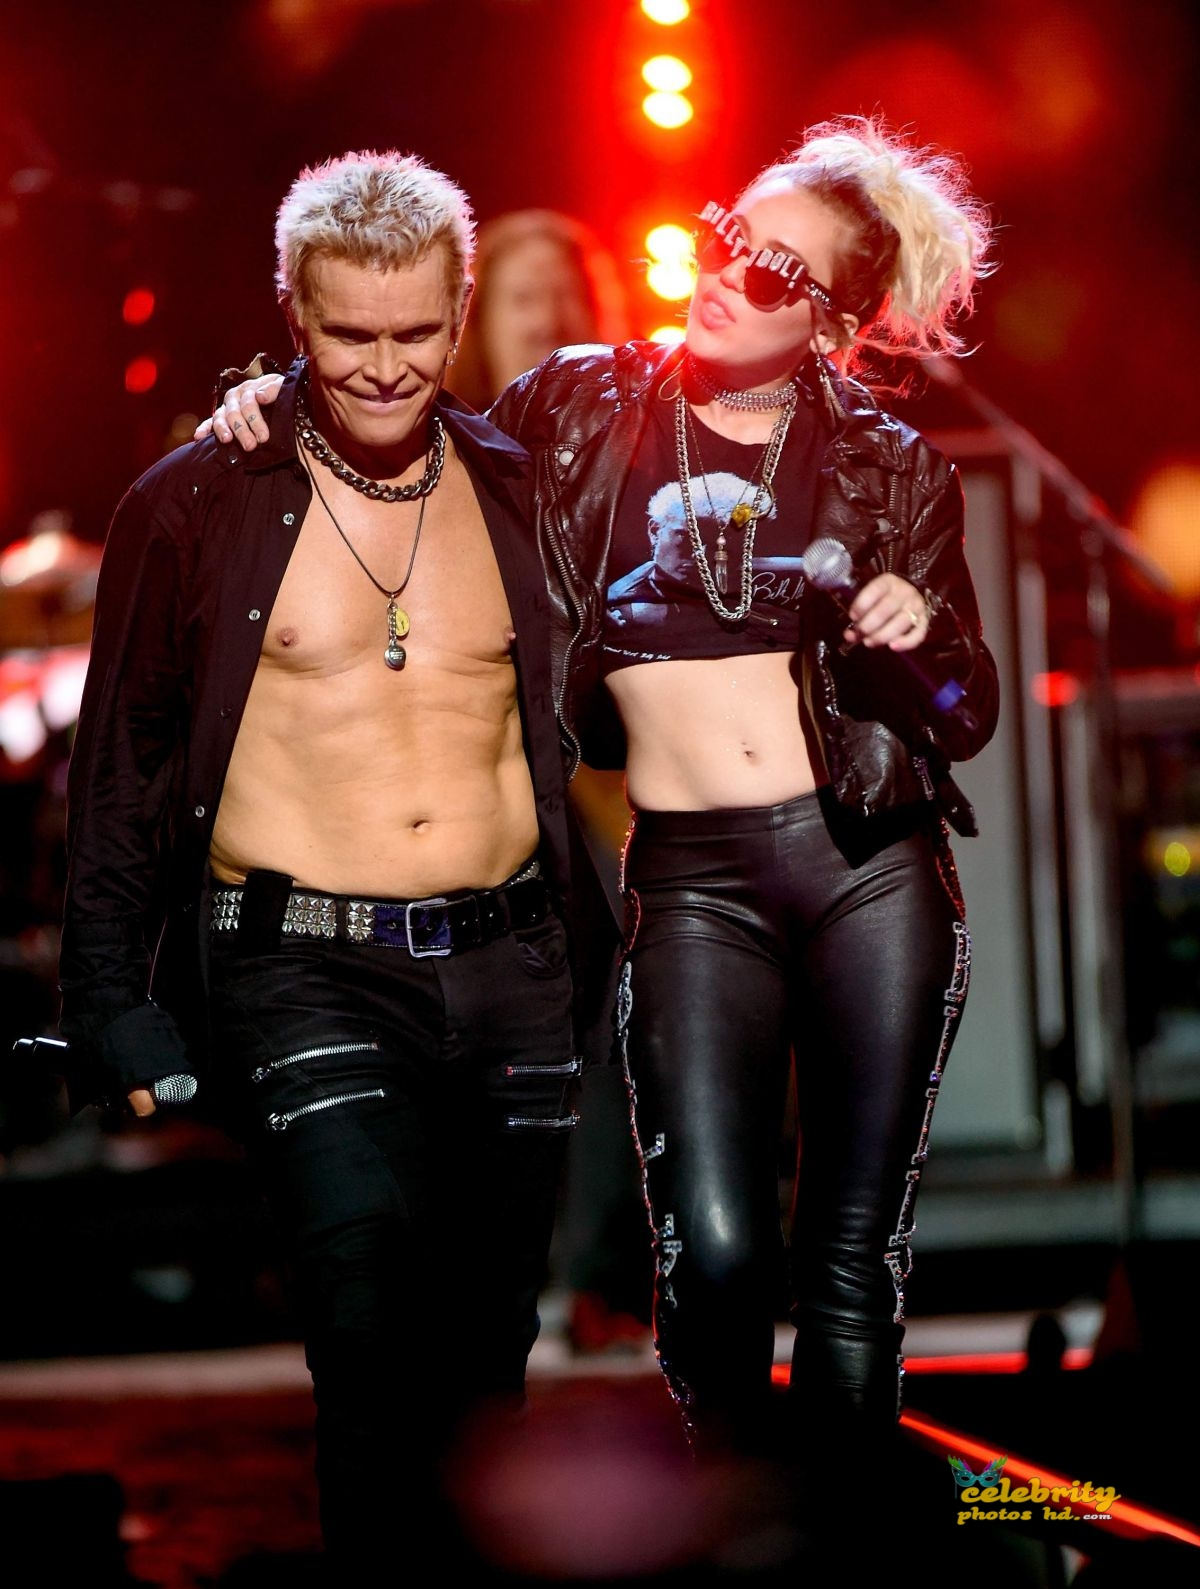 miley-cyrus-joins-billy-idol-onstage-during-the-iheartradio-festival-_6